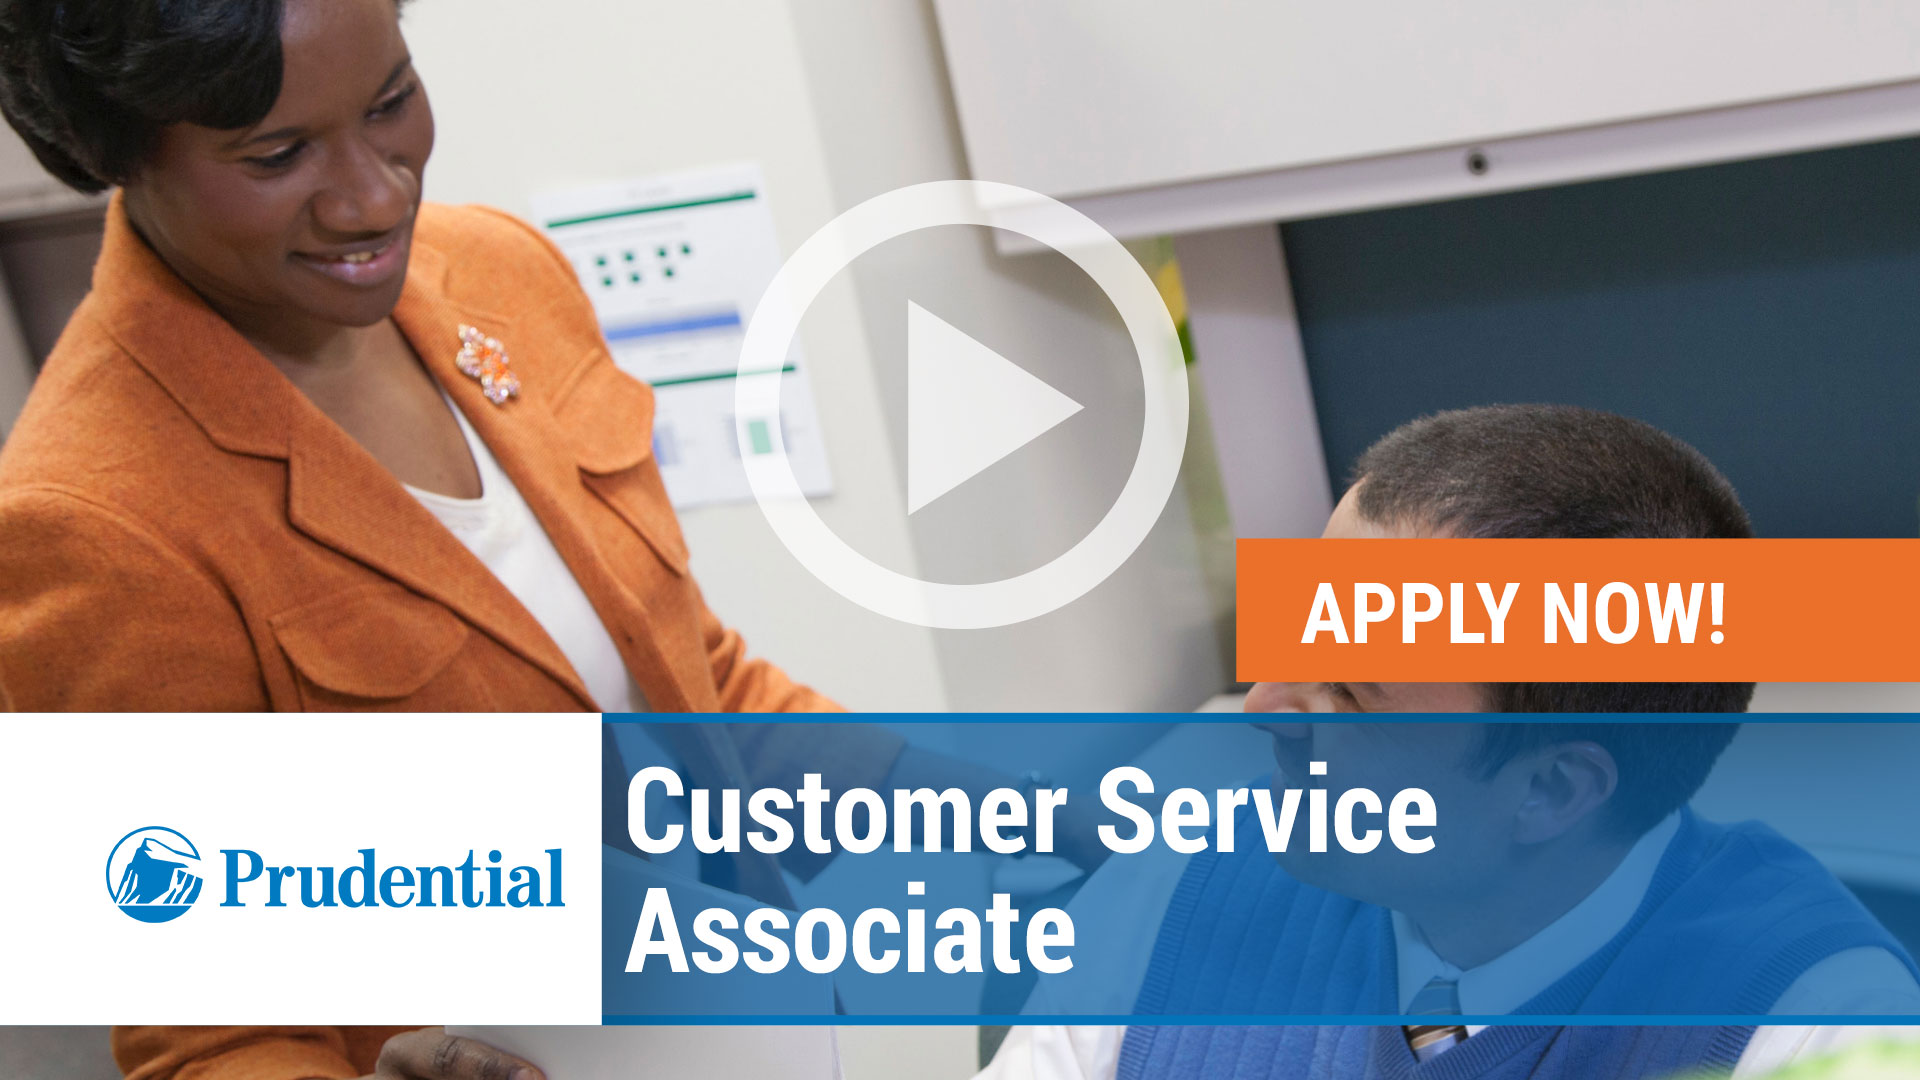 Watch our careers video for available job opening Customer Service Associate in Portland ME, Scottsdale AZ